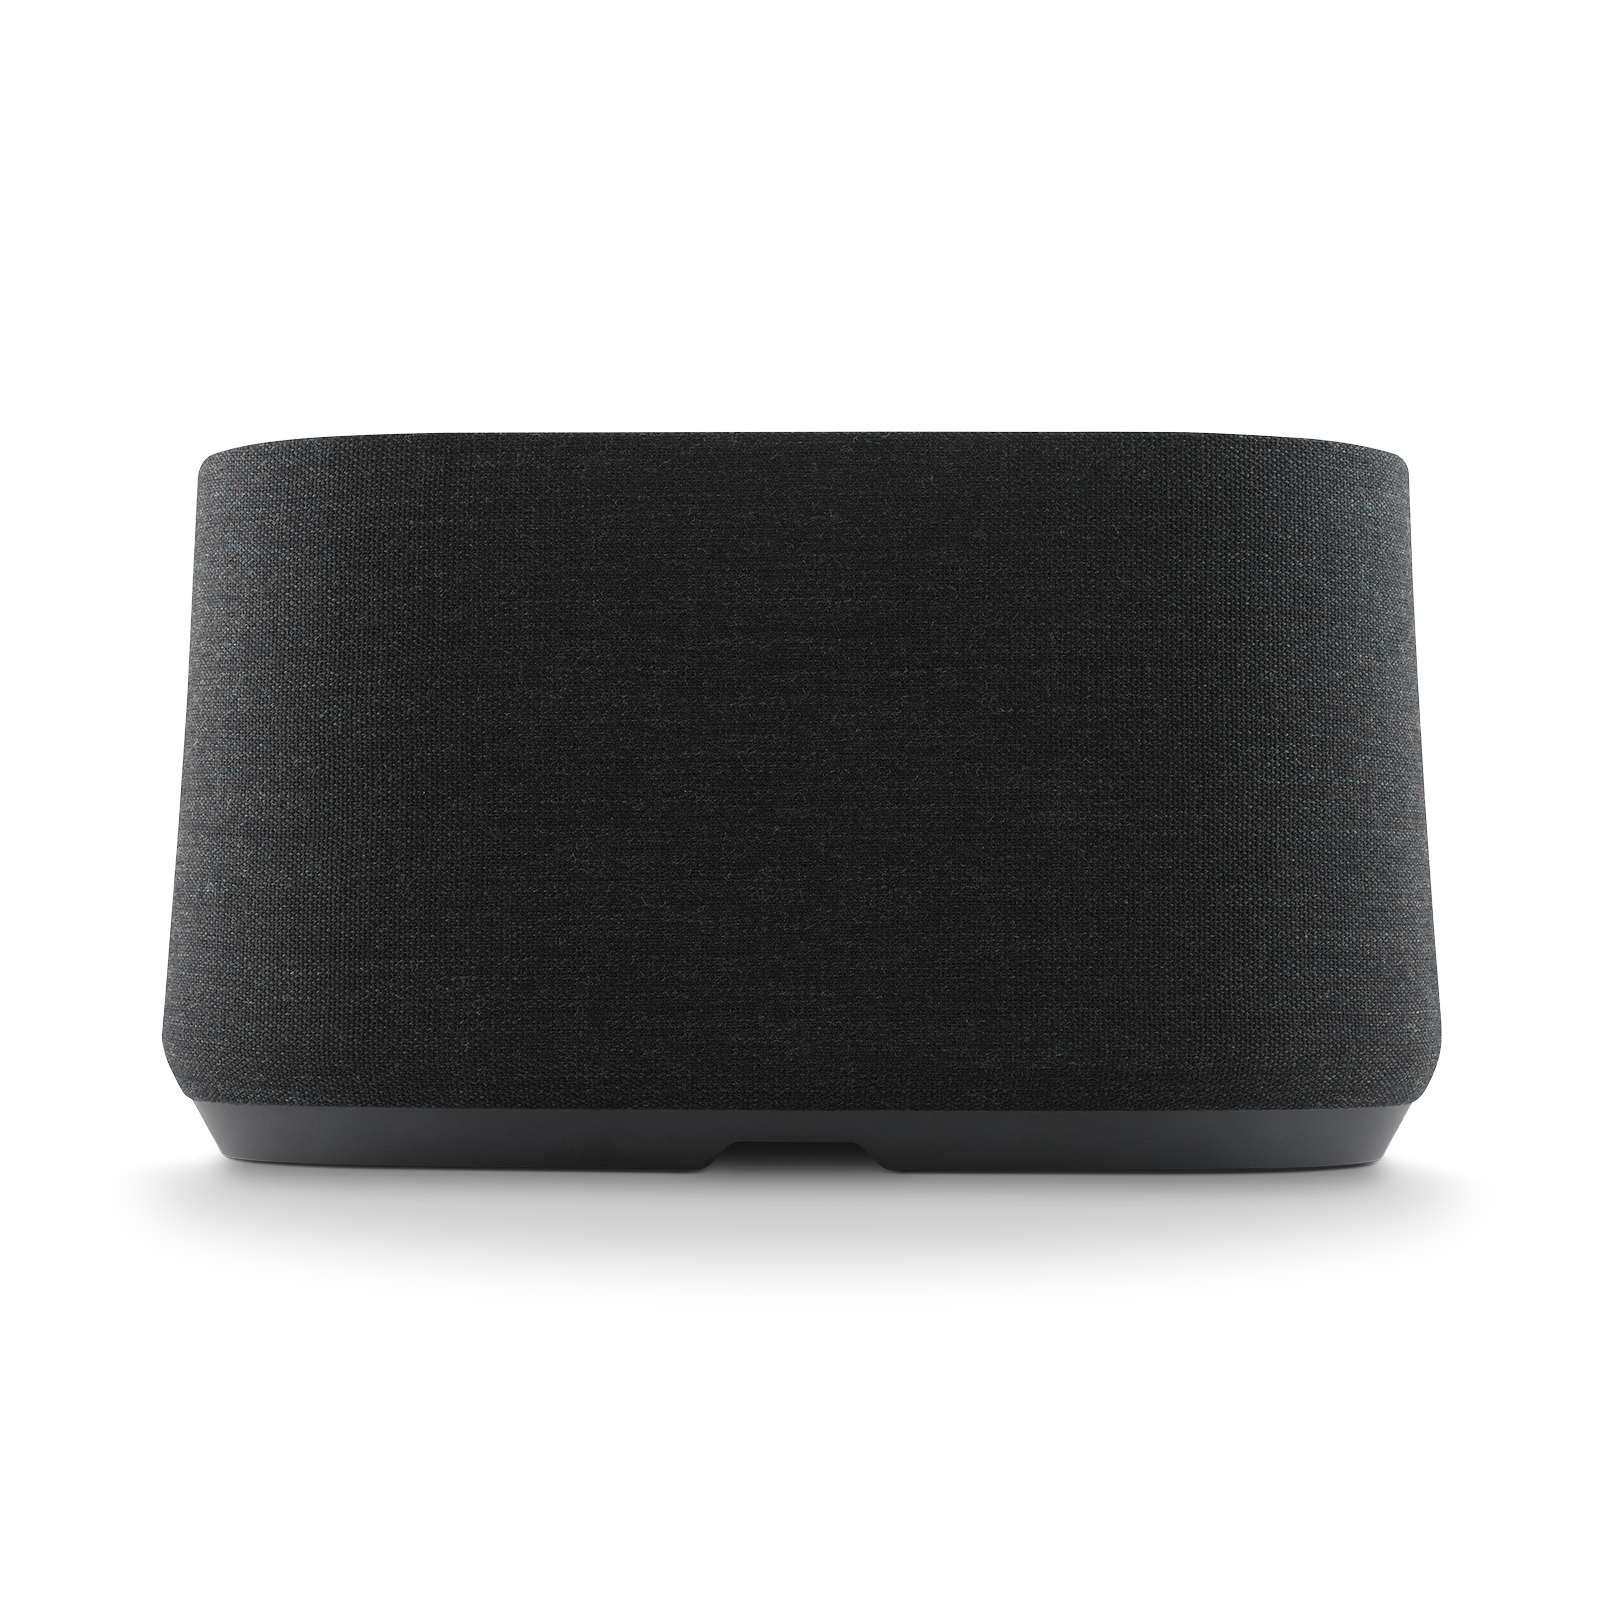 Harman Kardon Citation 500 - Black - Large Tabletop Smart Home Loudspeaker System - Back